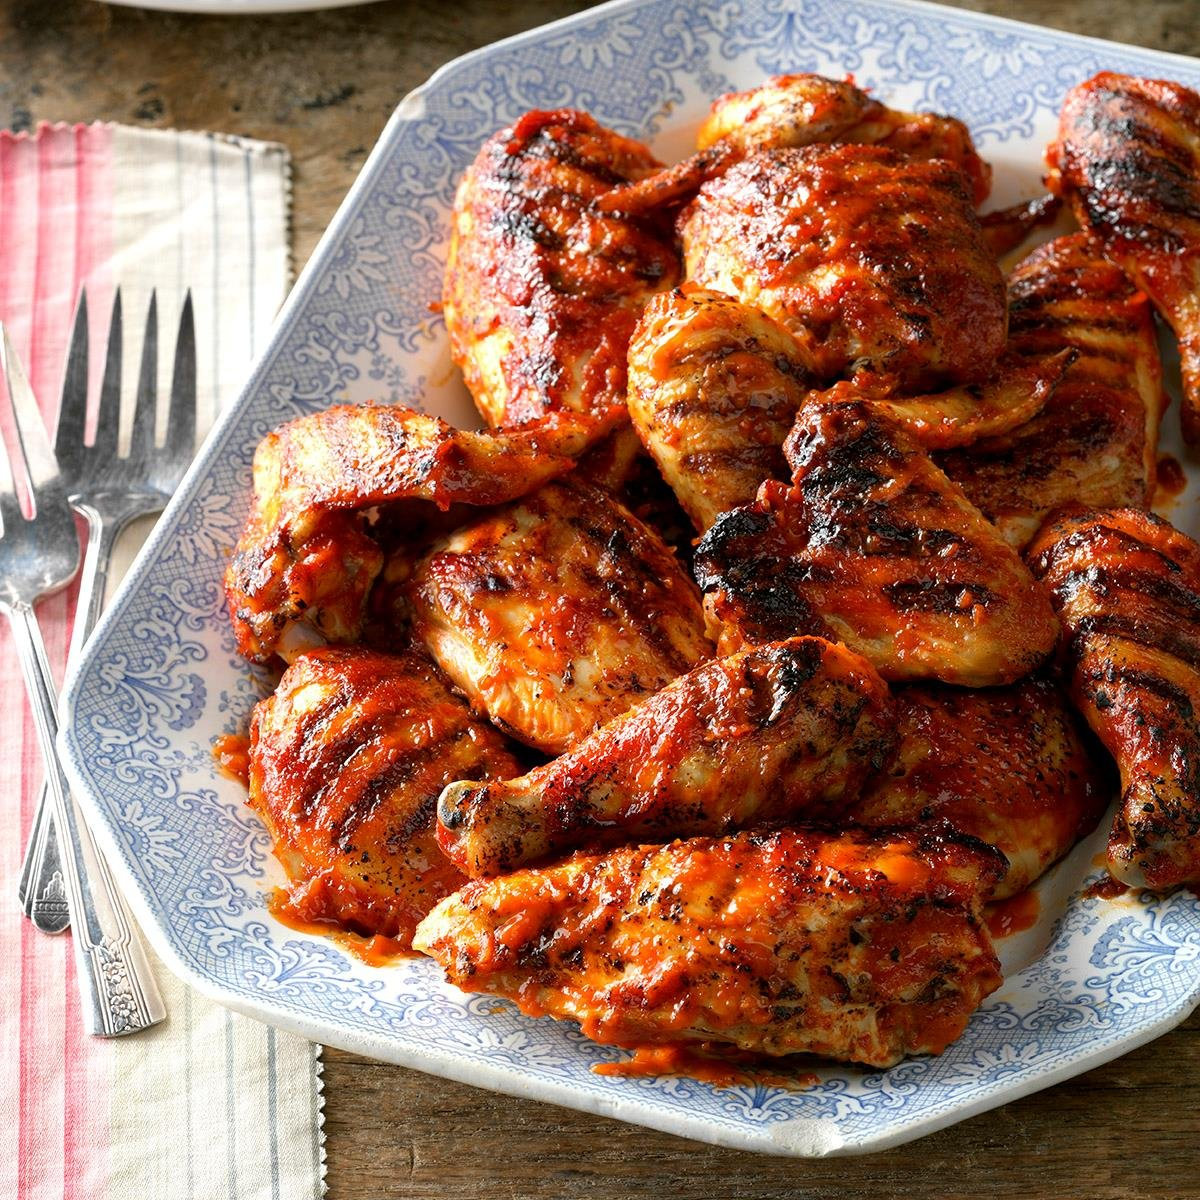 #FridayMorningMarkout Barbecued Chicken Wings > Crossface Chicken Wings ~ via @TasteOfHome https://t.co/Pj55dcXNLn https://t.co/SV9Ty1mqqC